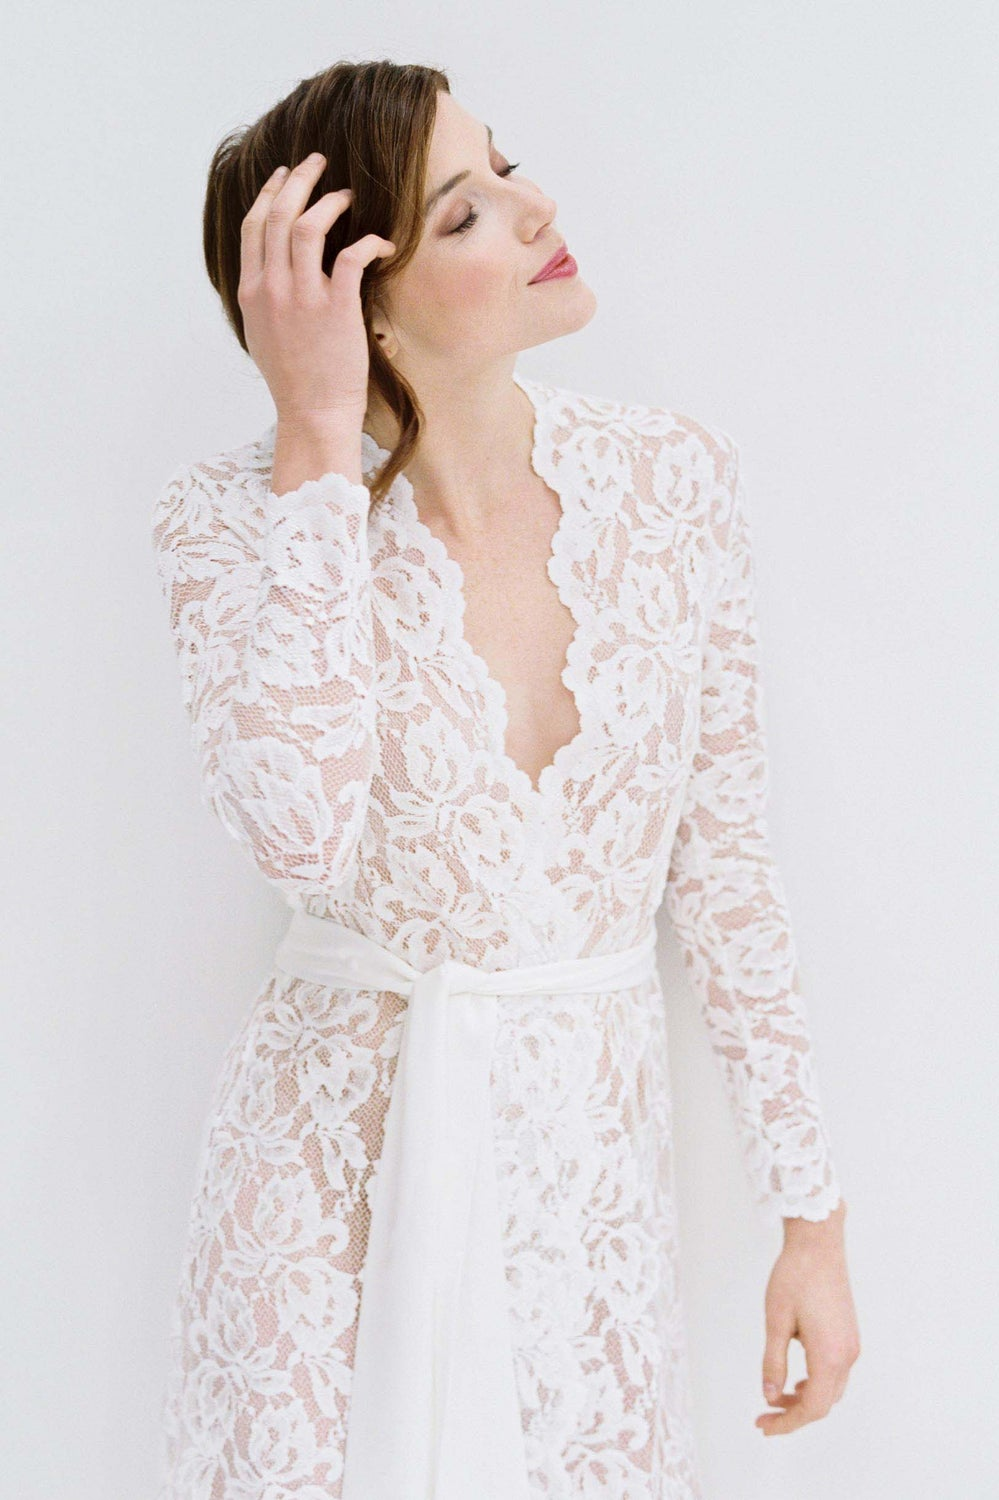 Image of Lauren Stretch French Lace Robe in ivory